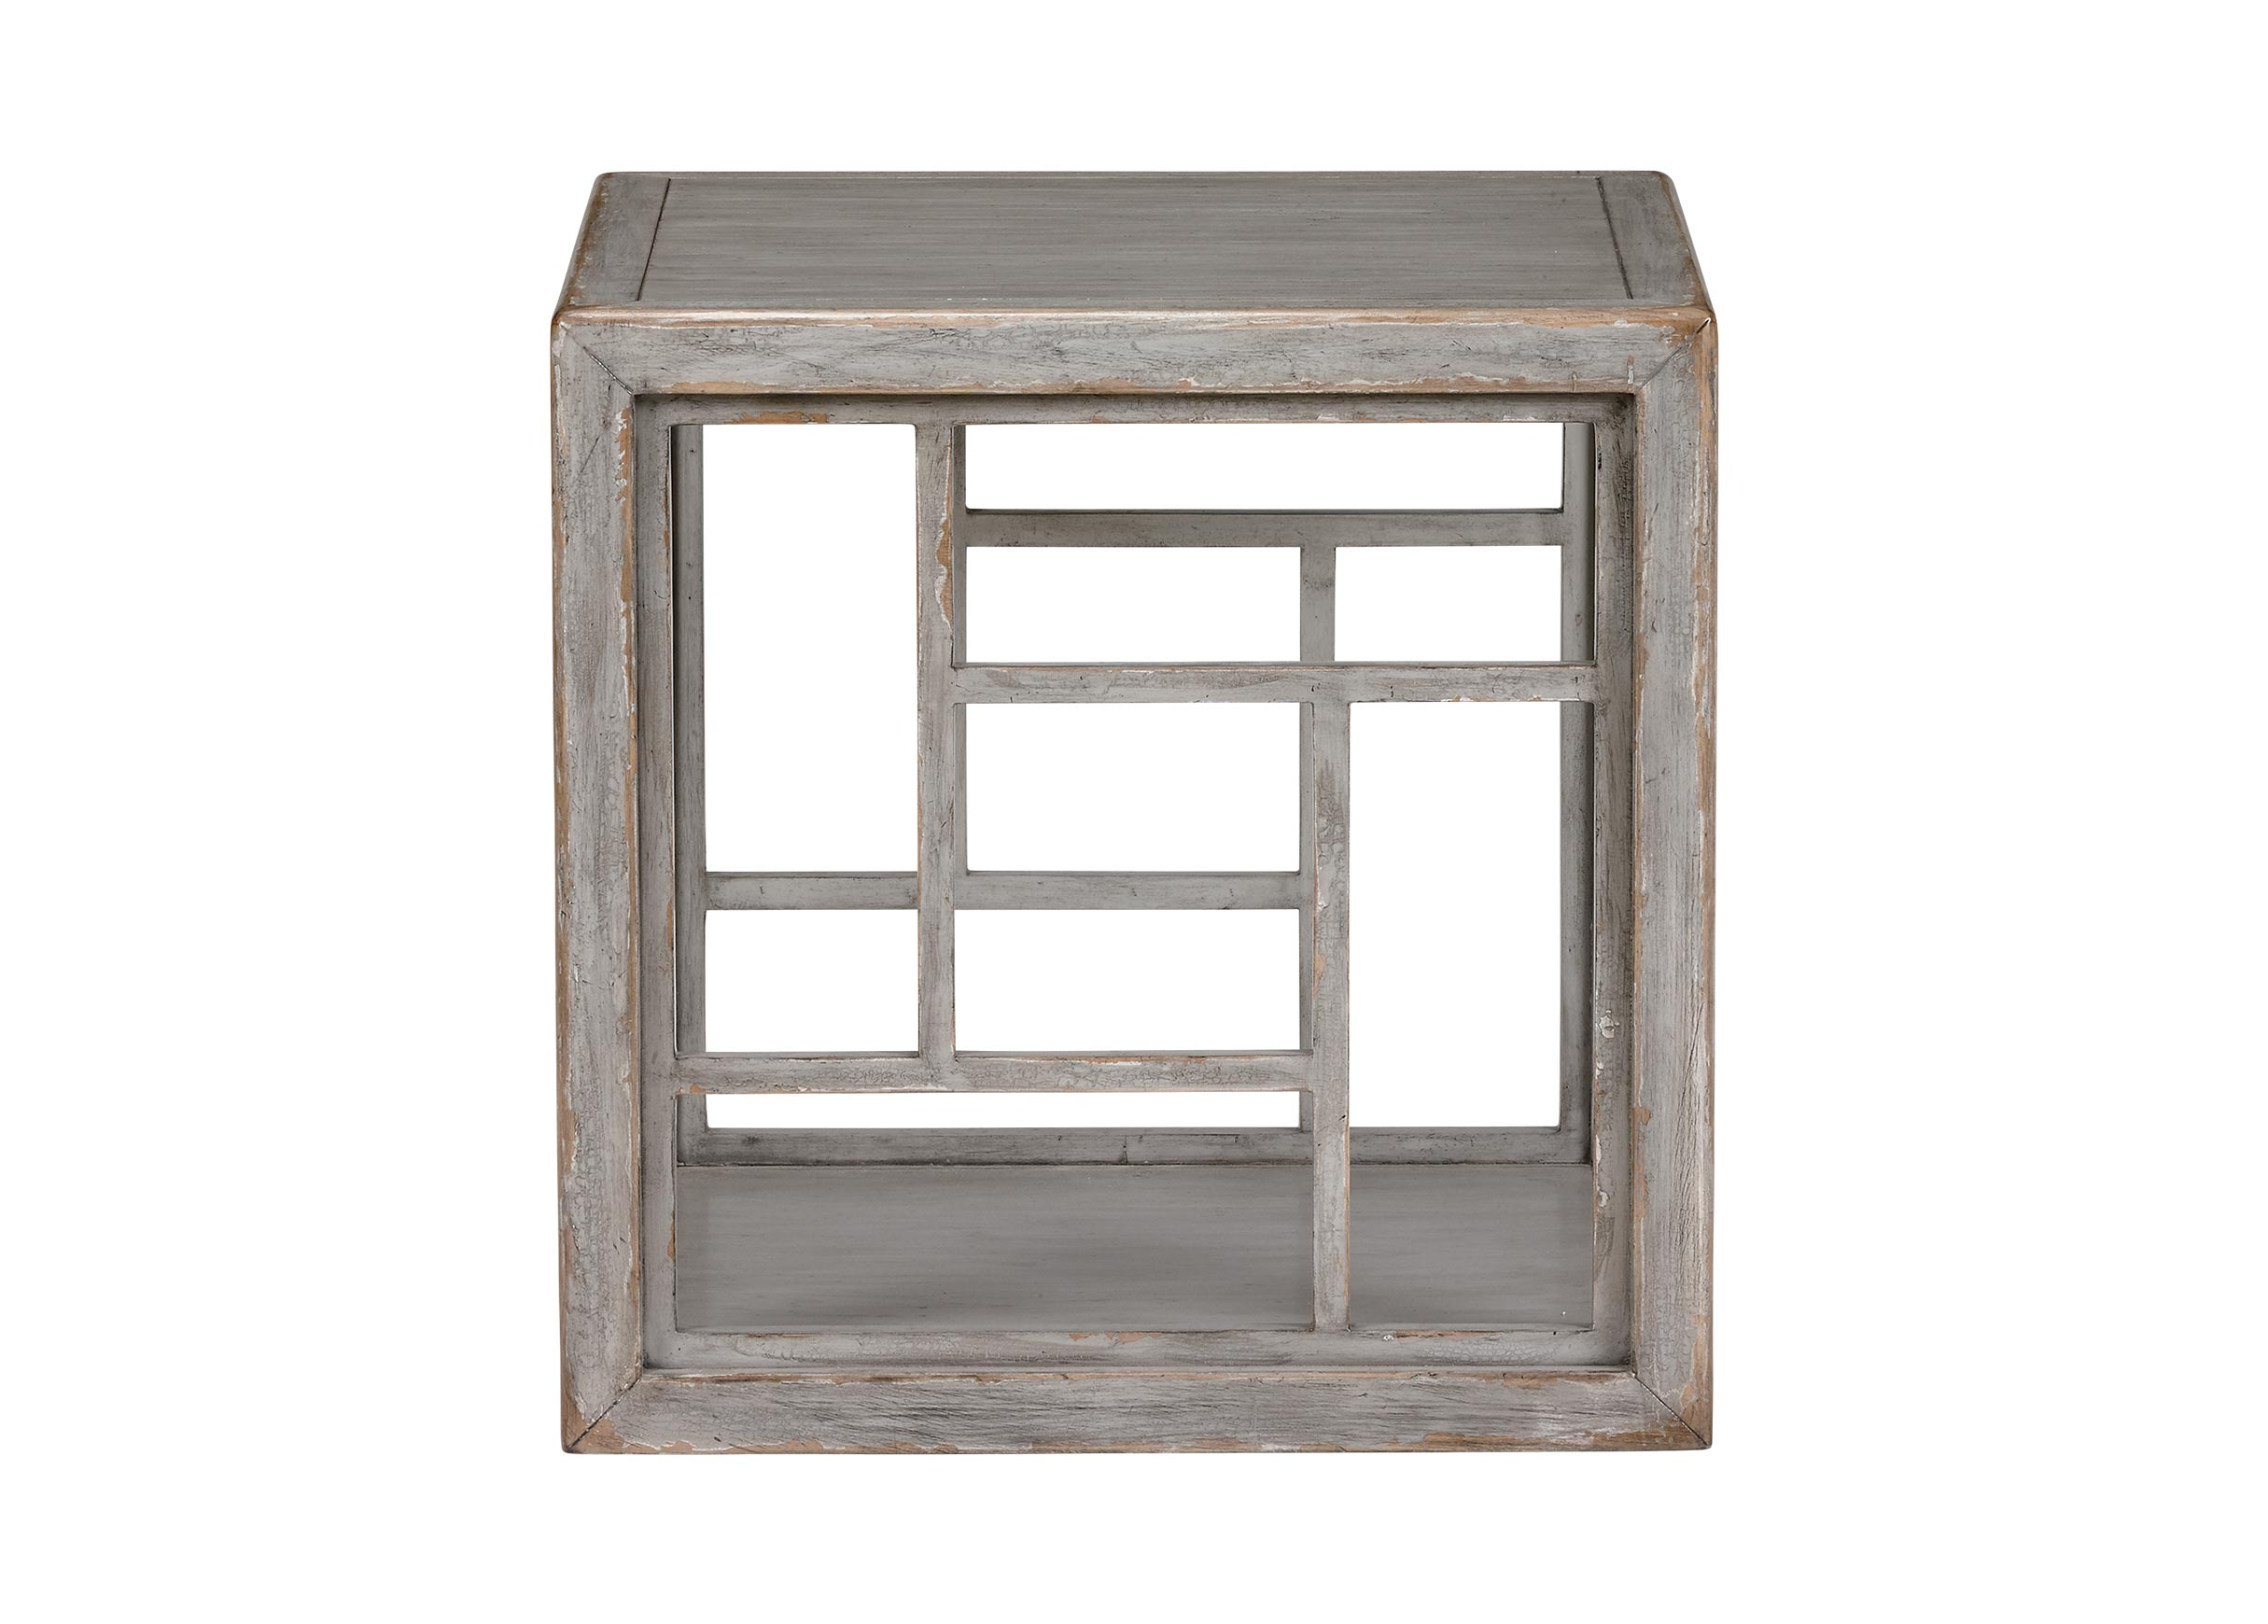 side tables accent ethan allen better homes and gardens table rustic gray quick ship dynasty fretwork furniture occasional glass mirror dresser little with drawers brass